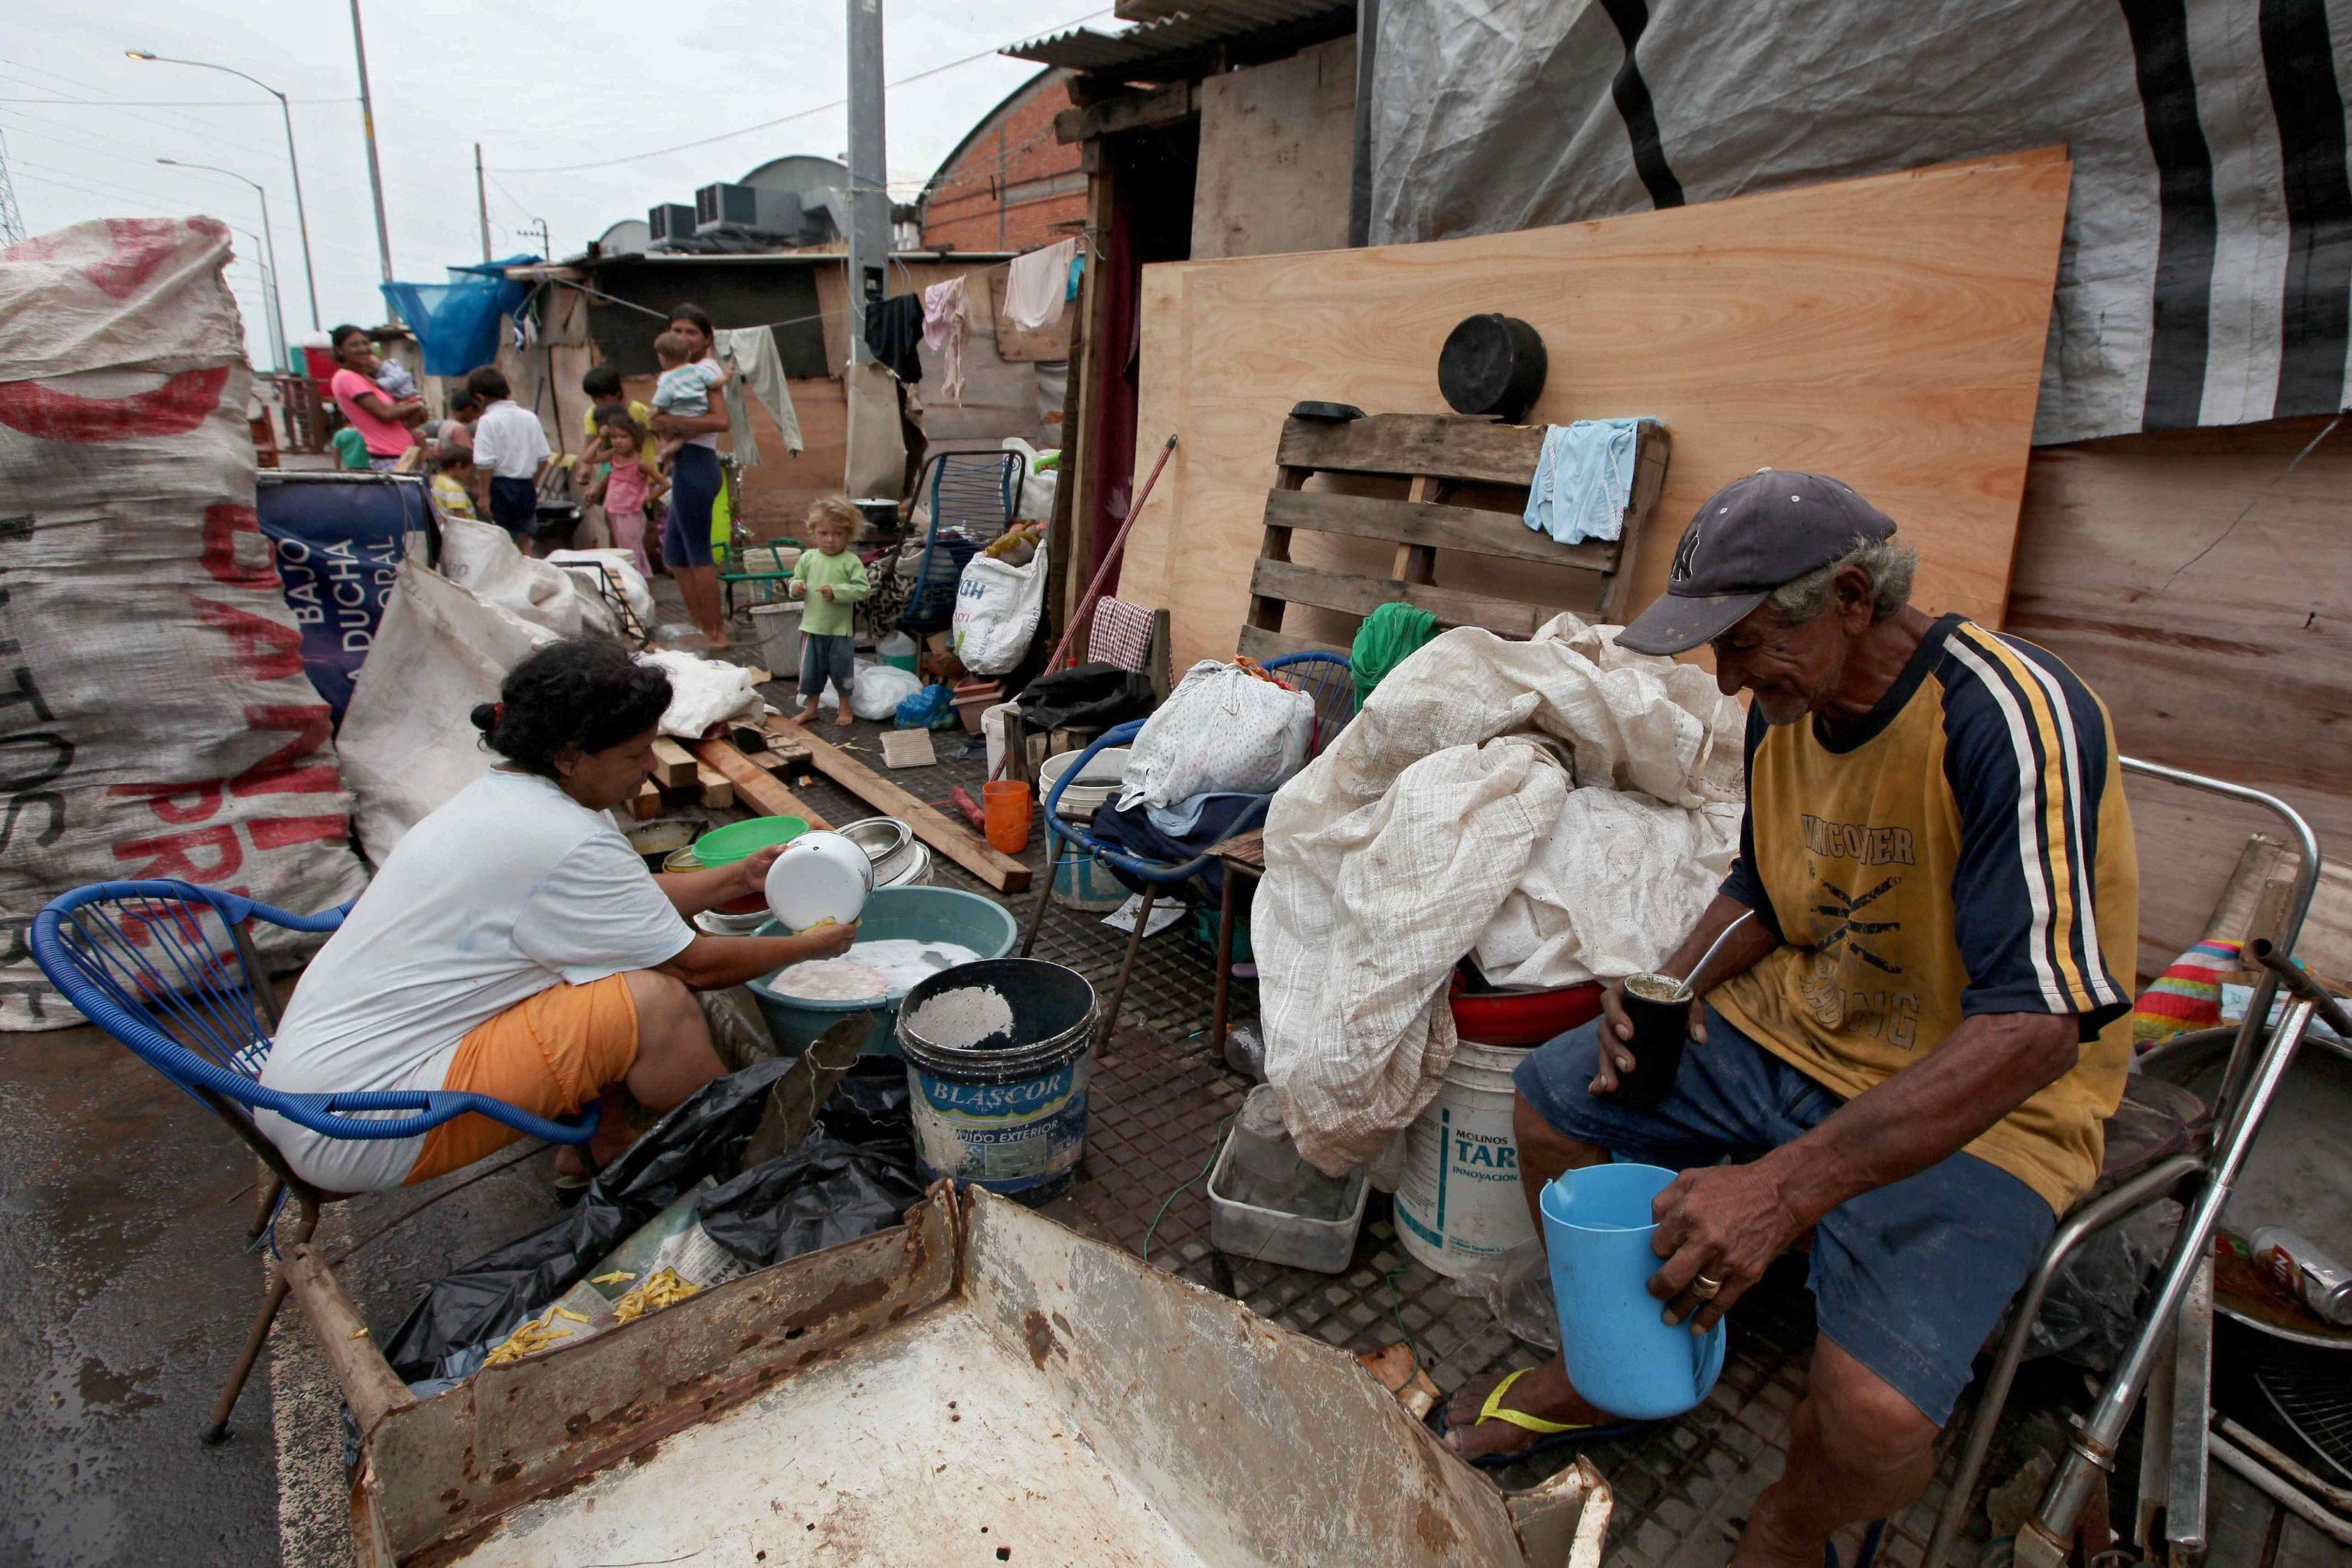 A family sits in a temporary shelter for affected people in Asuncion